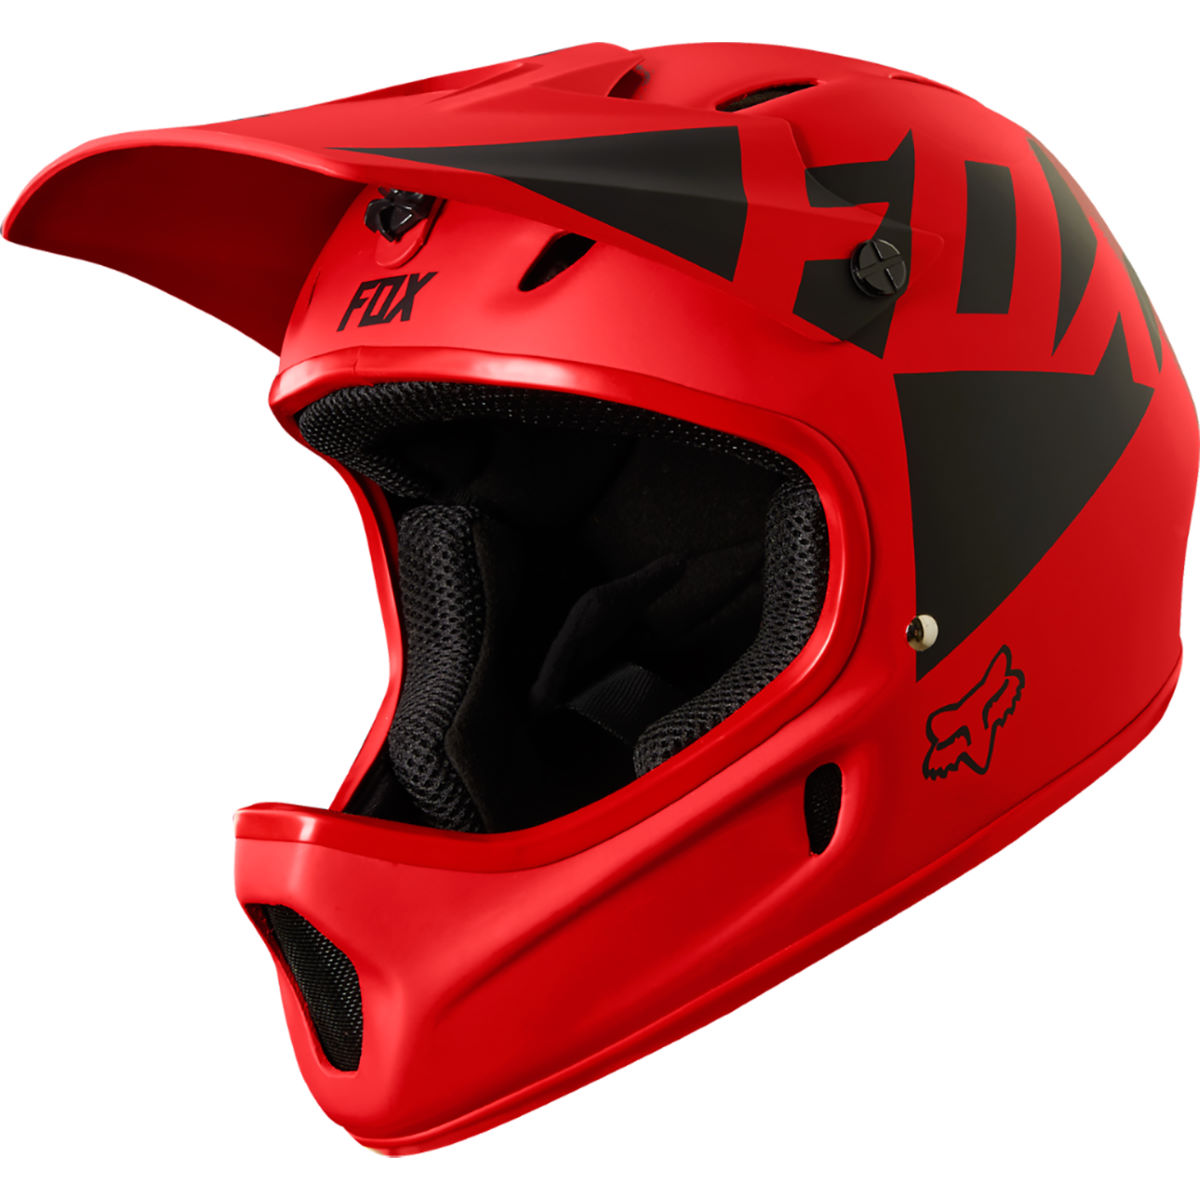 Casco Fox Racing Rampage Landi - Cascos integrales